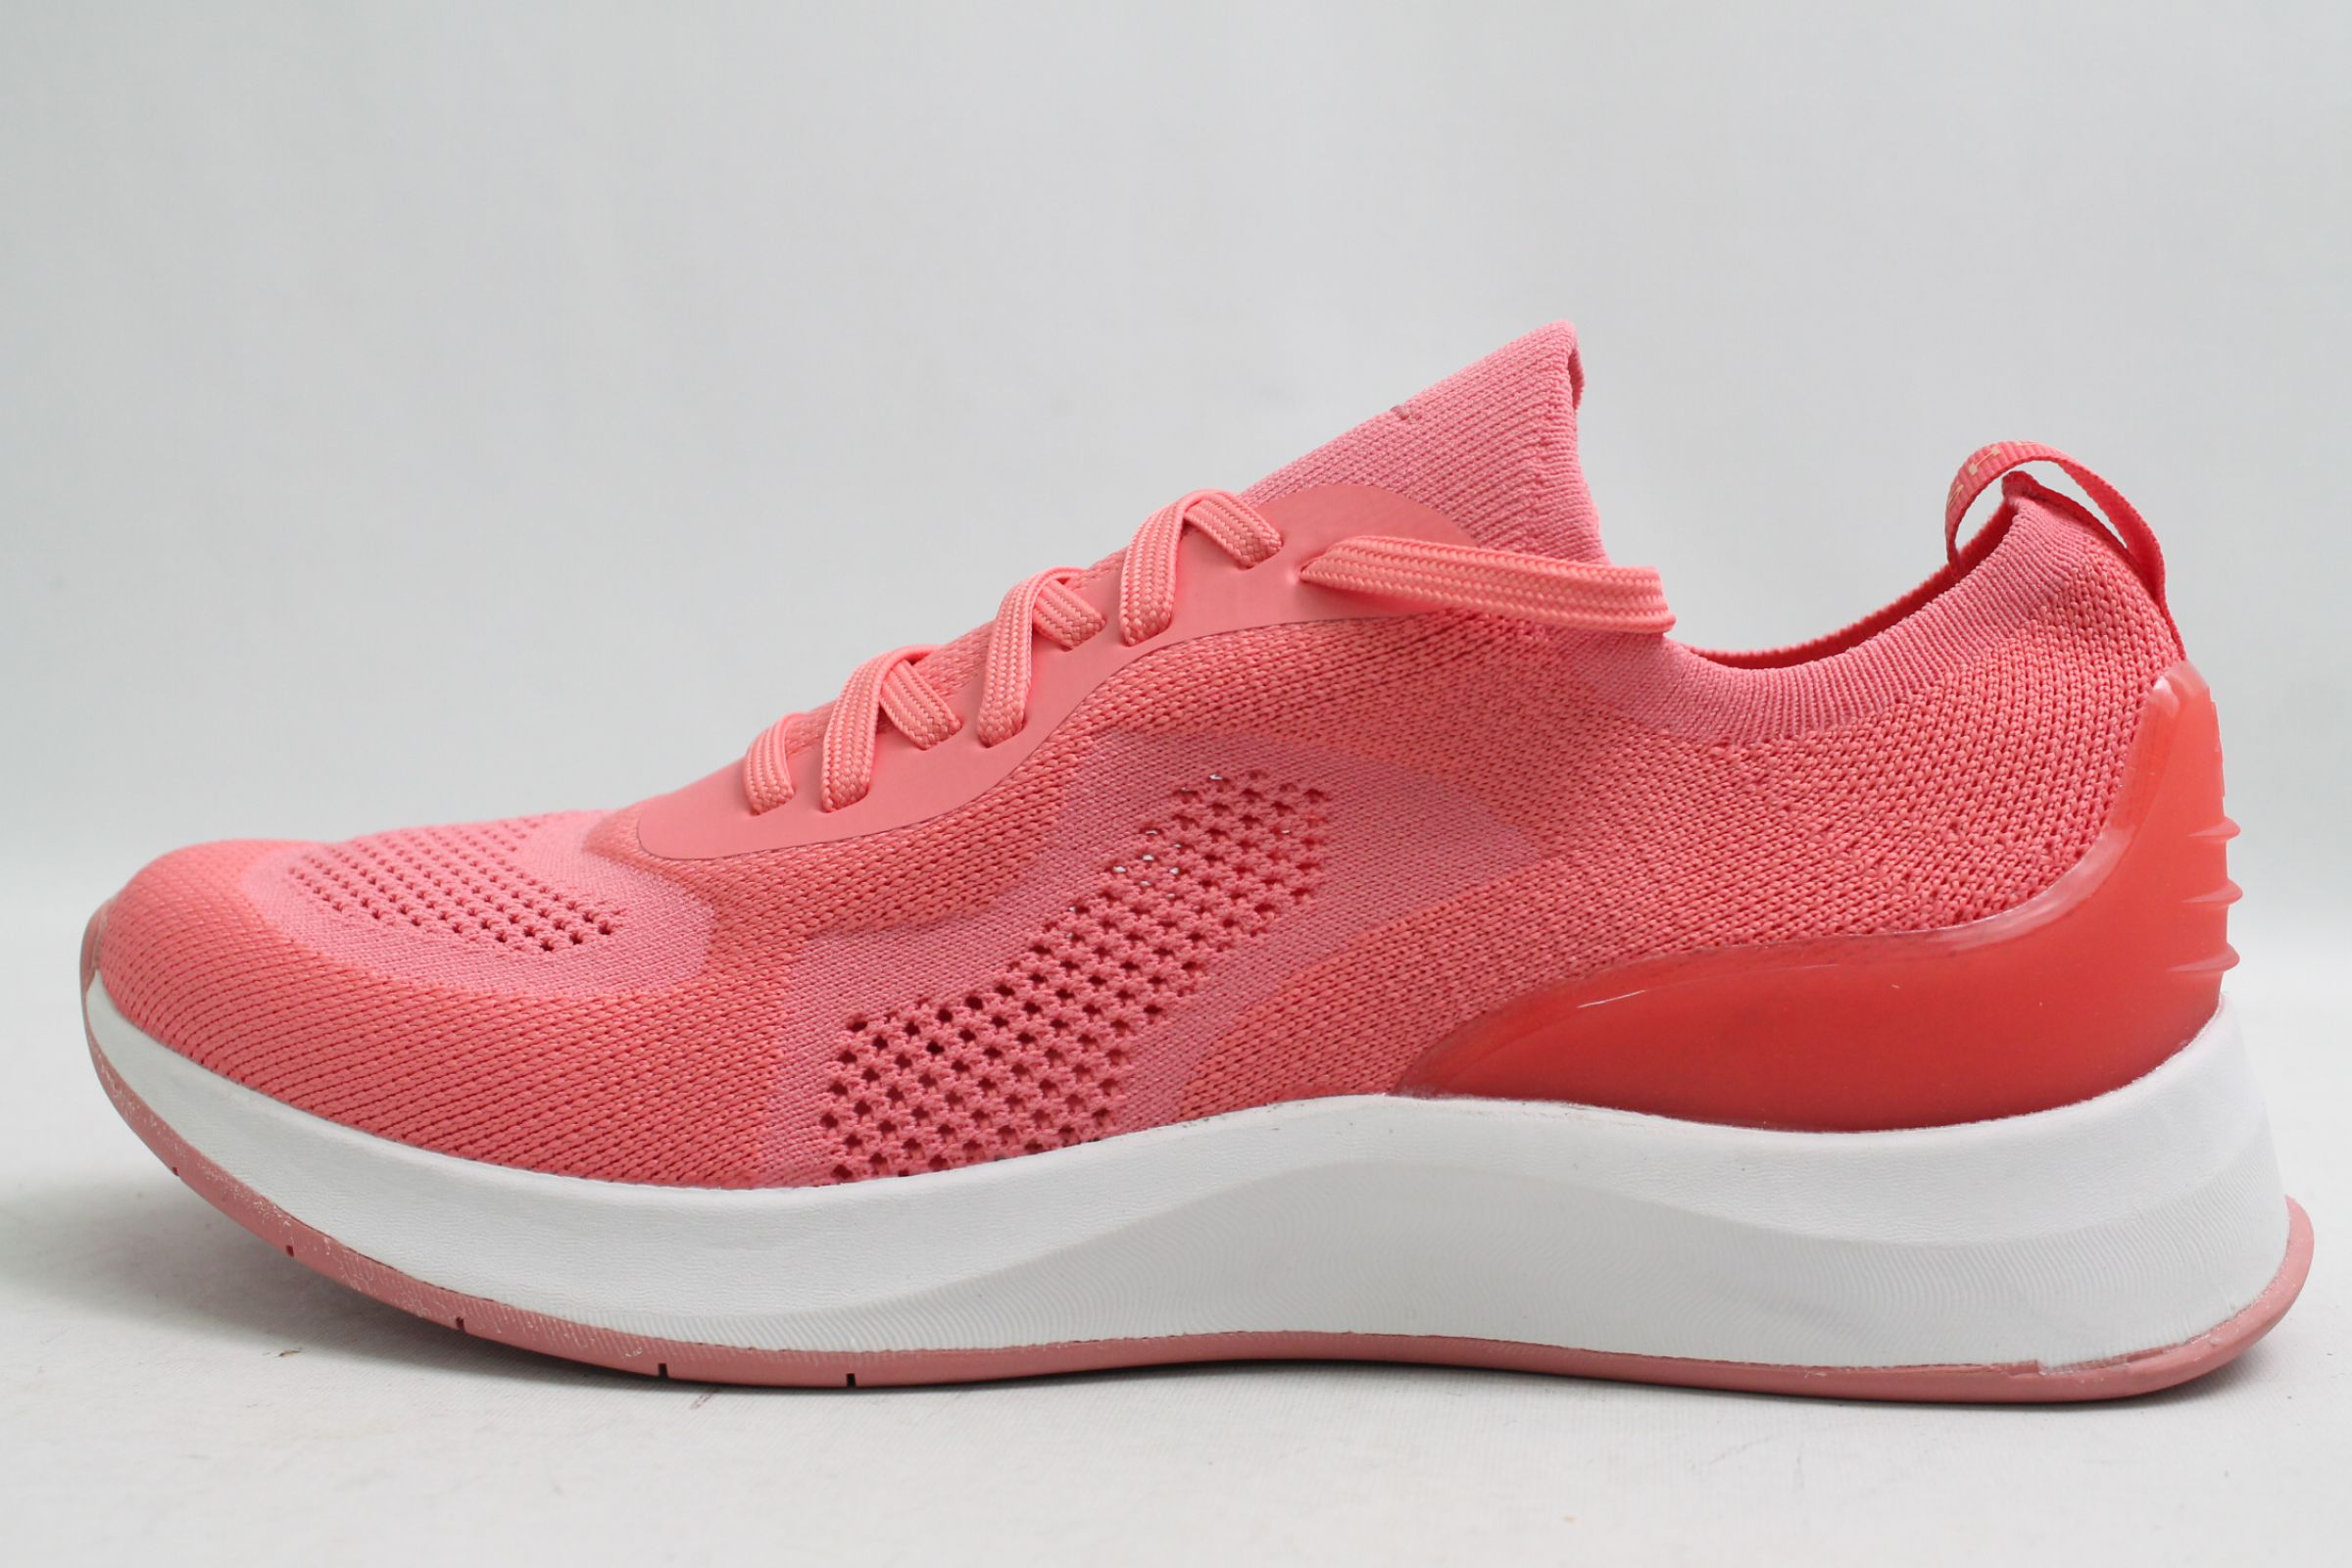 Details about Tamaris Womens Sneakers Pink meshgewebe Removable Footbed Sportiv show original title